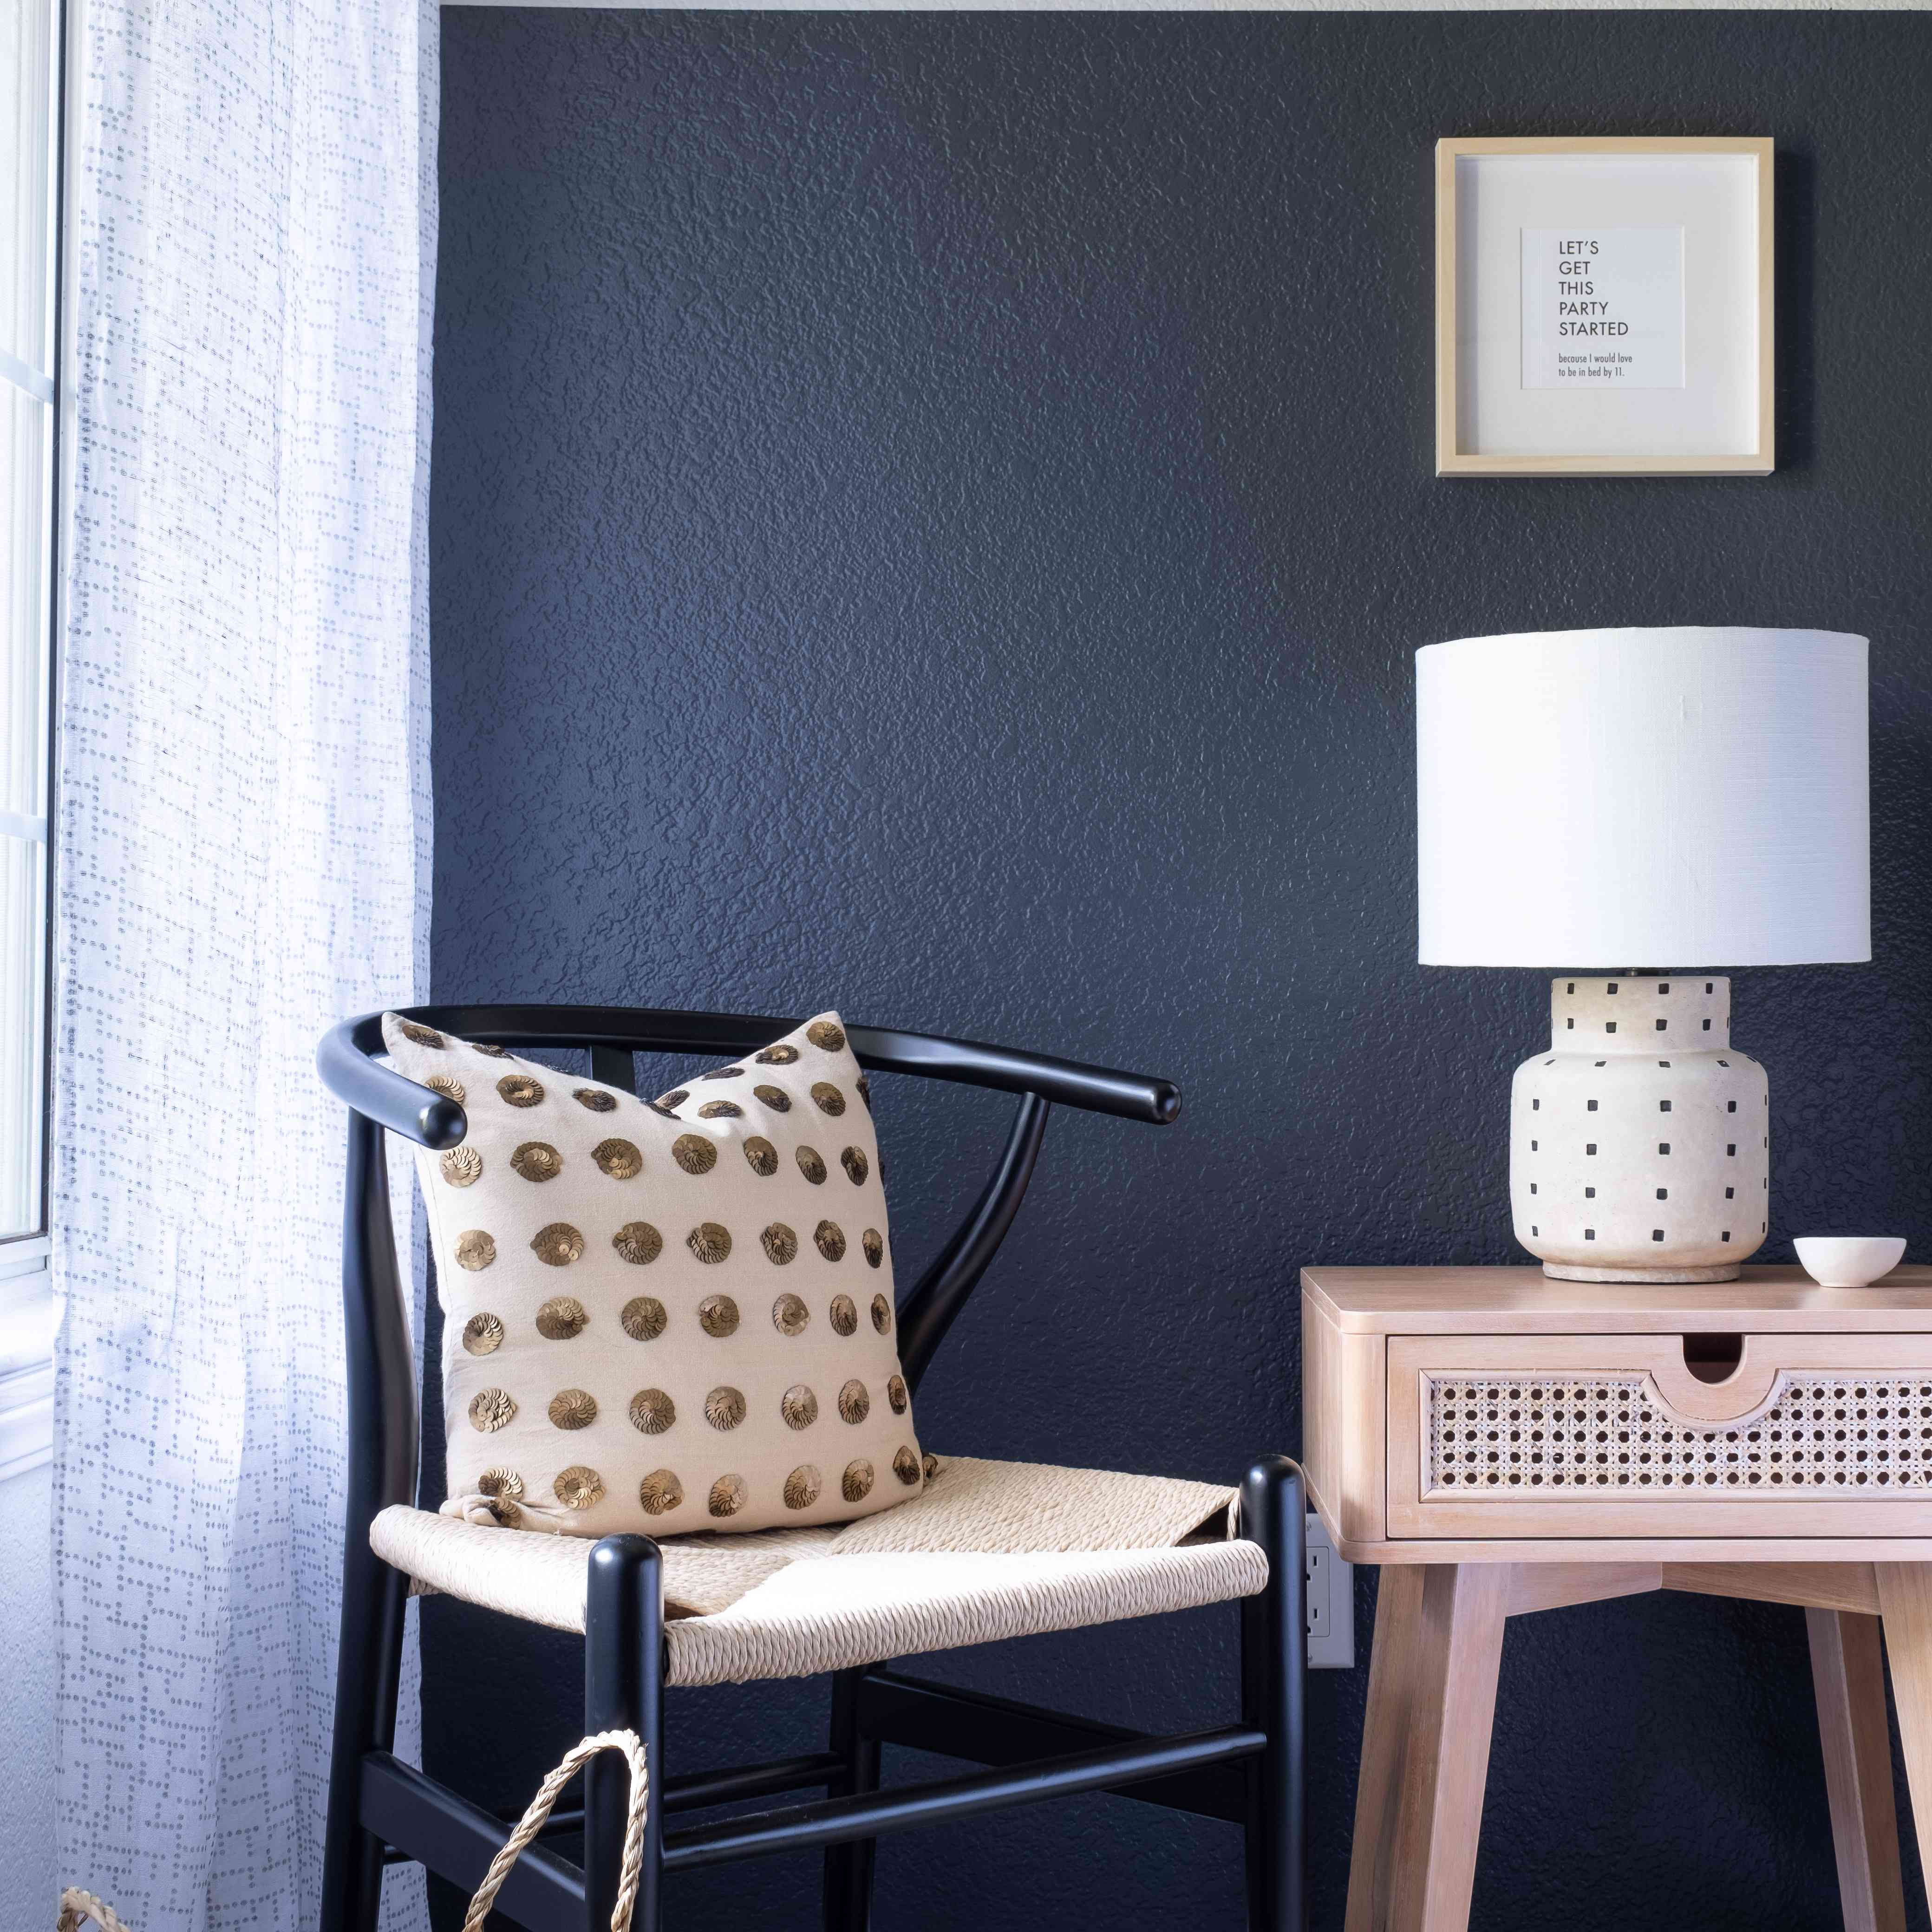 Sitting area with black and rattan accents.